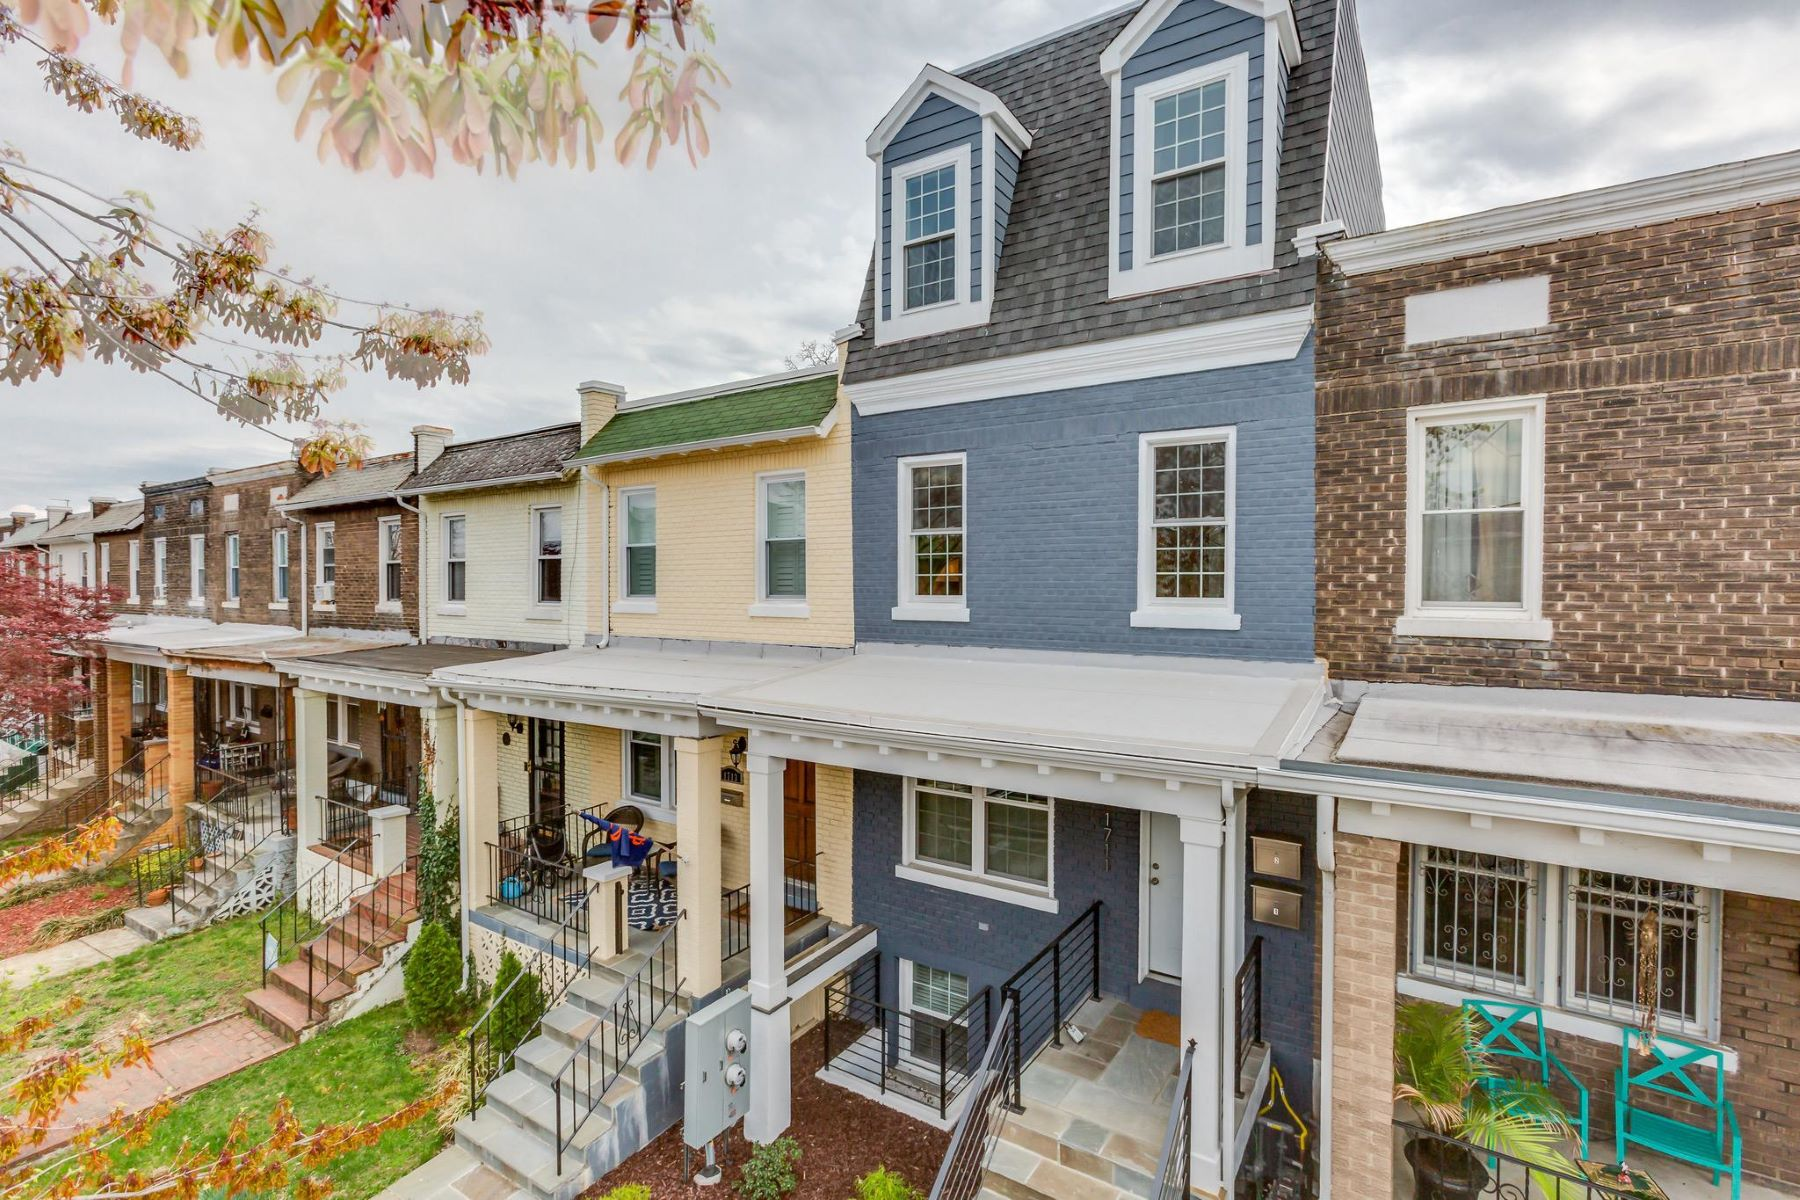 Additional photo for property listing at 1711 D St SE #2 1711 D St SE #2 Washington, District Of Columbia 20003 United States